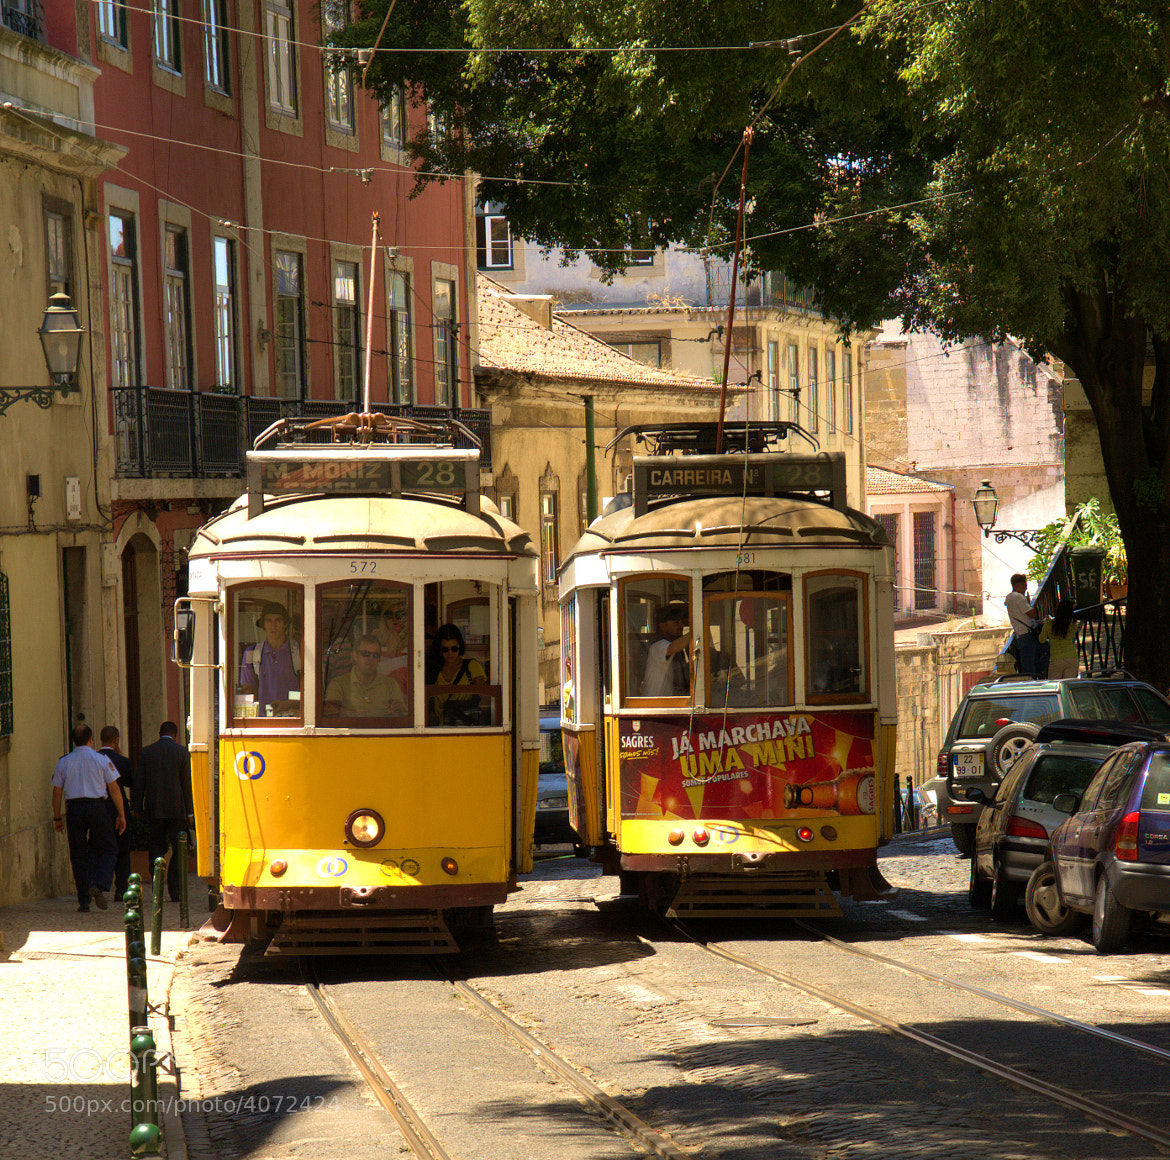 Photograph Lisbon historical tram by Edzo Boven on 500px